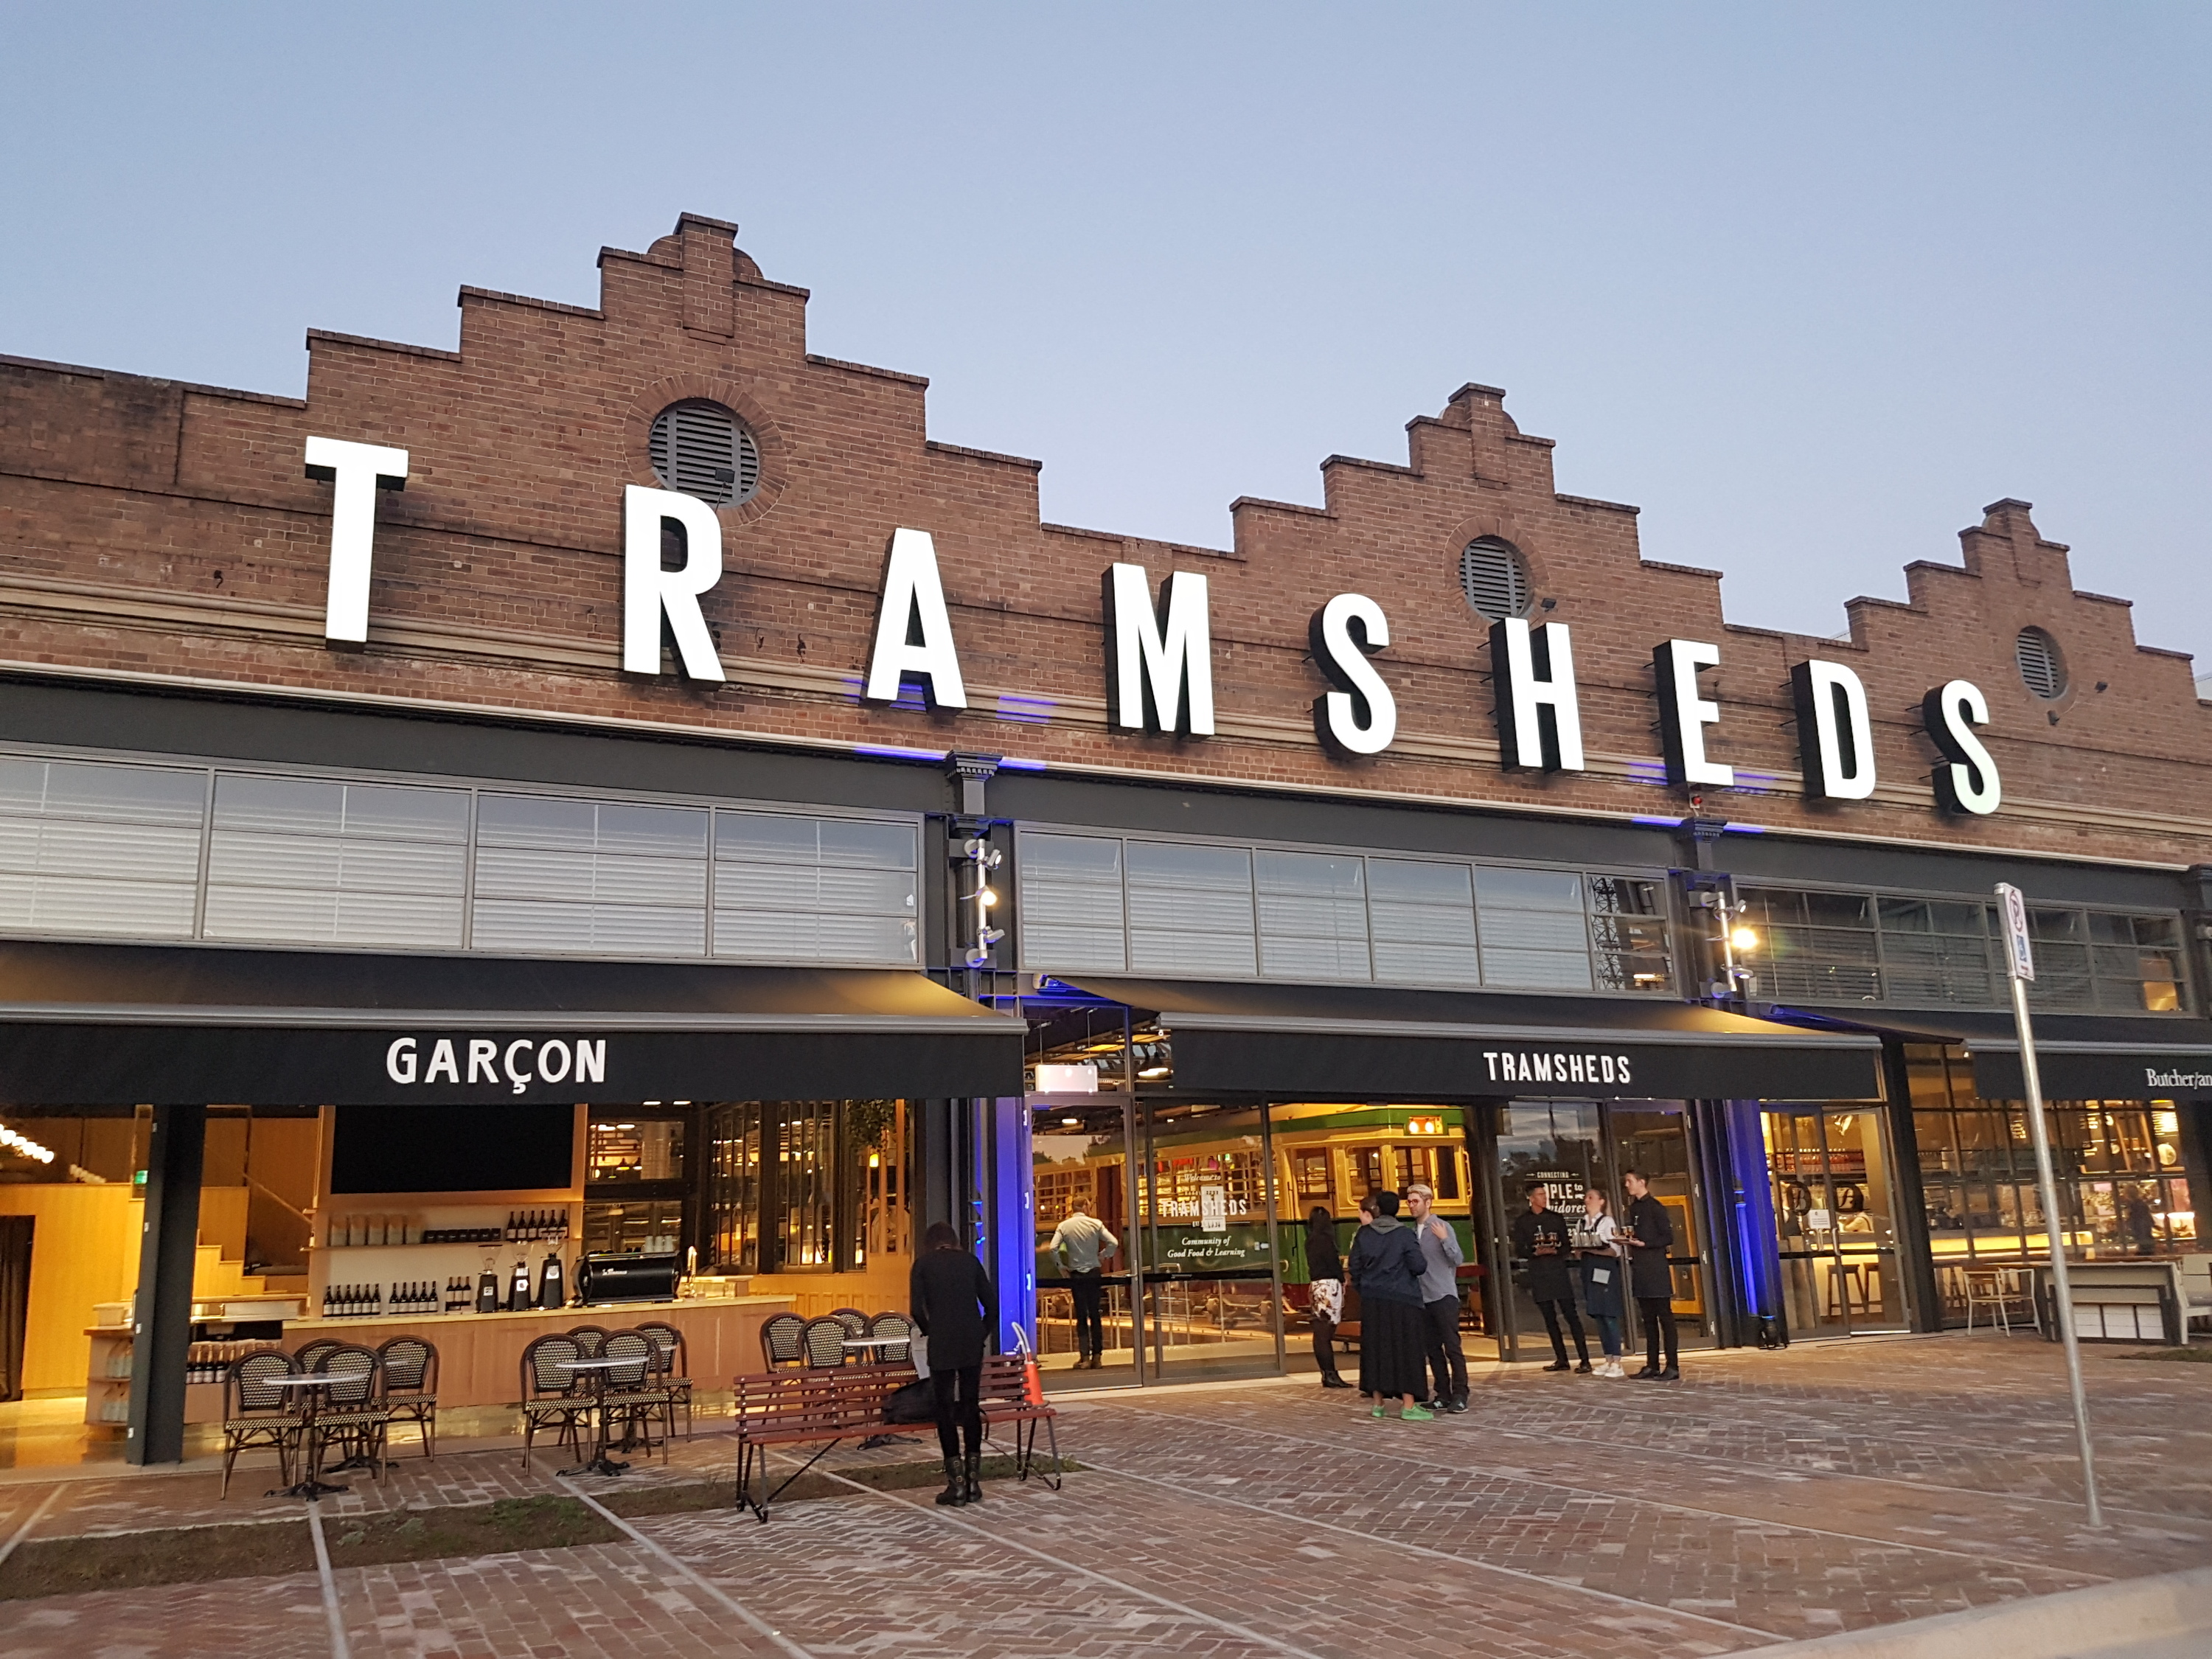 Here's what you should eat at Tramsheds